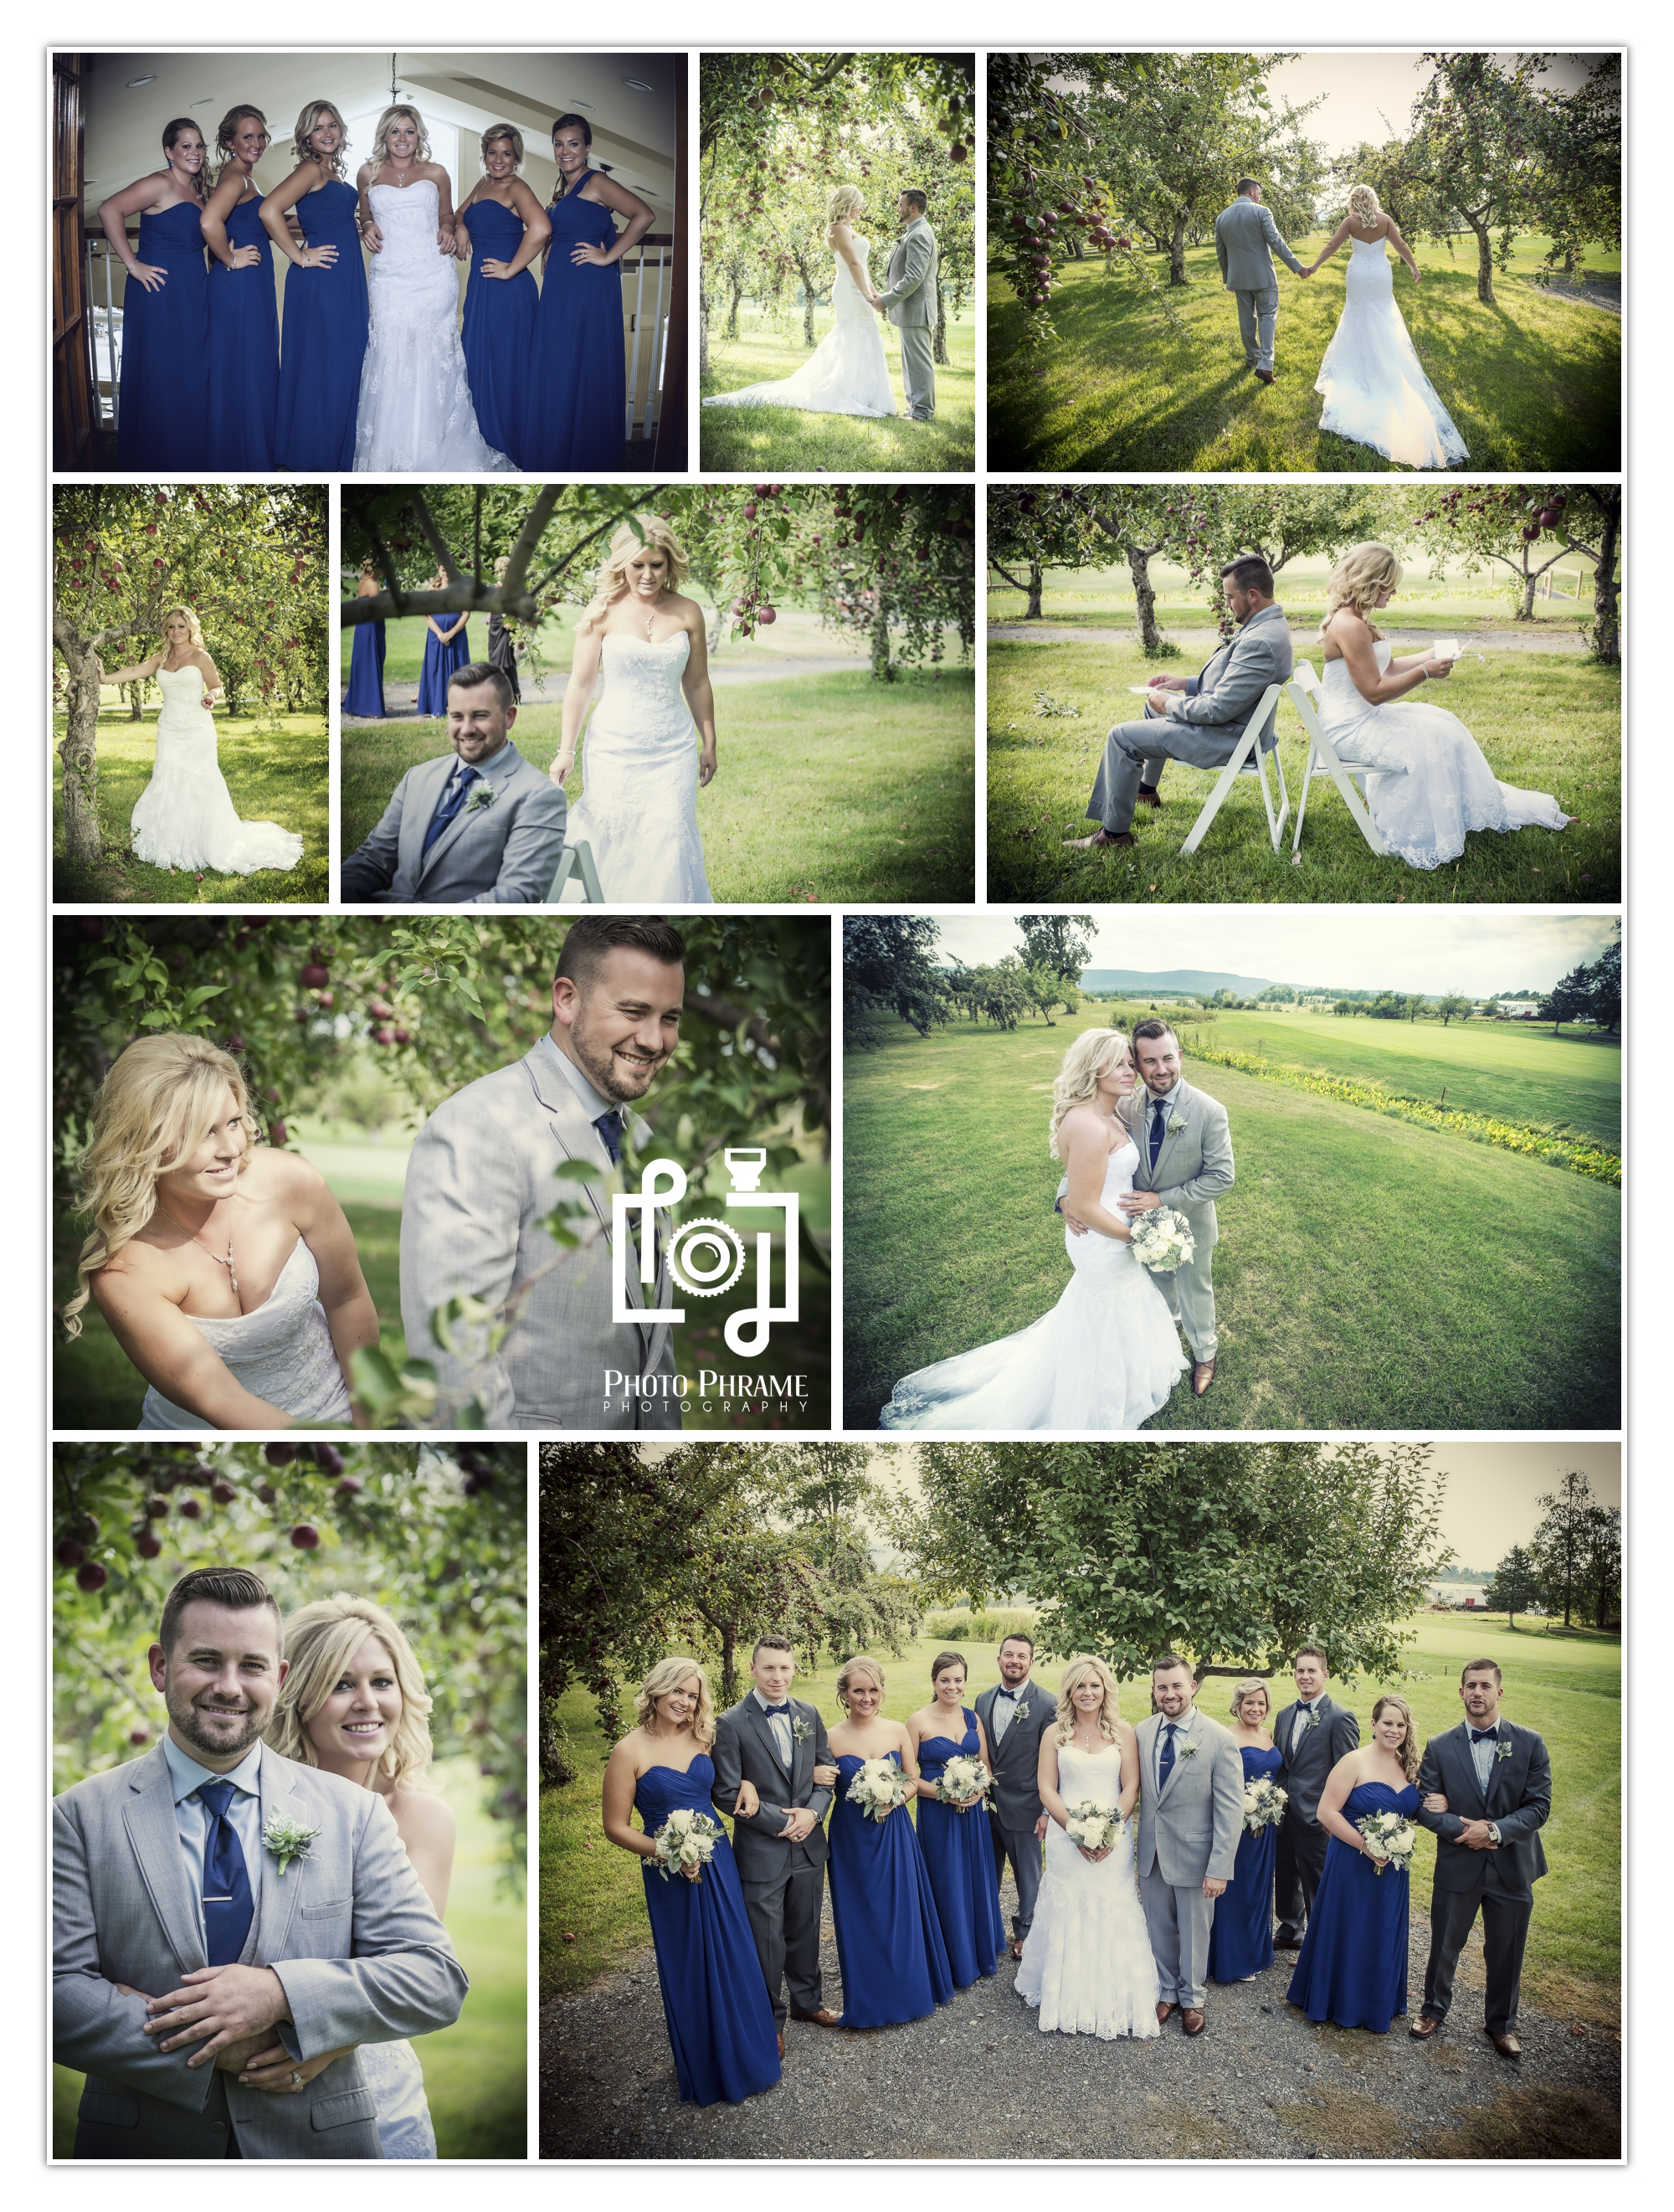 Photo Phrame Photography, Weddings in NYC